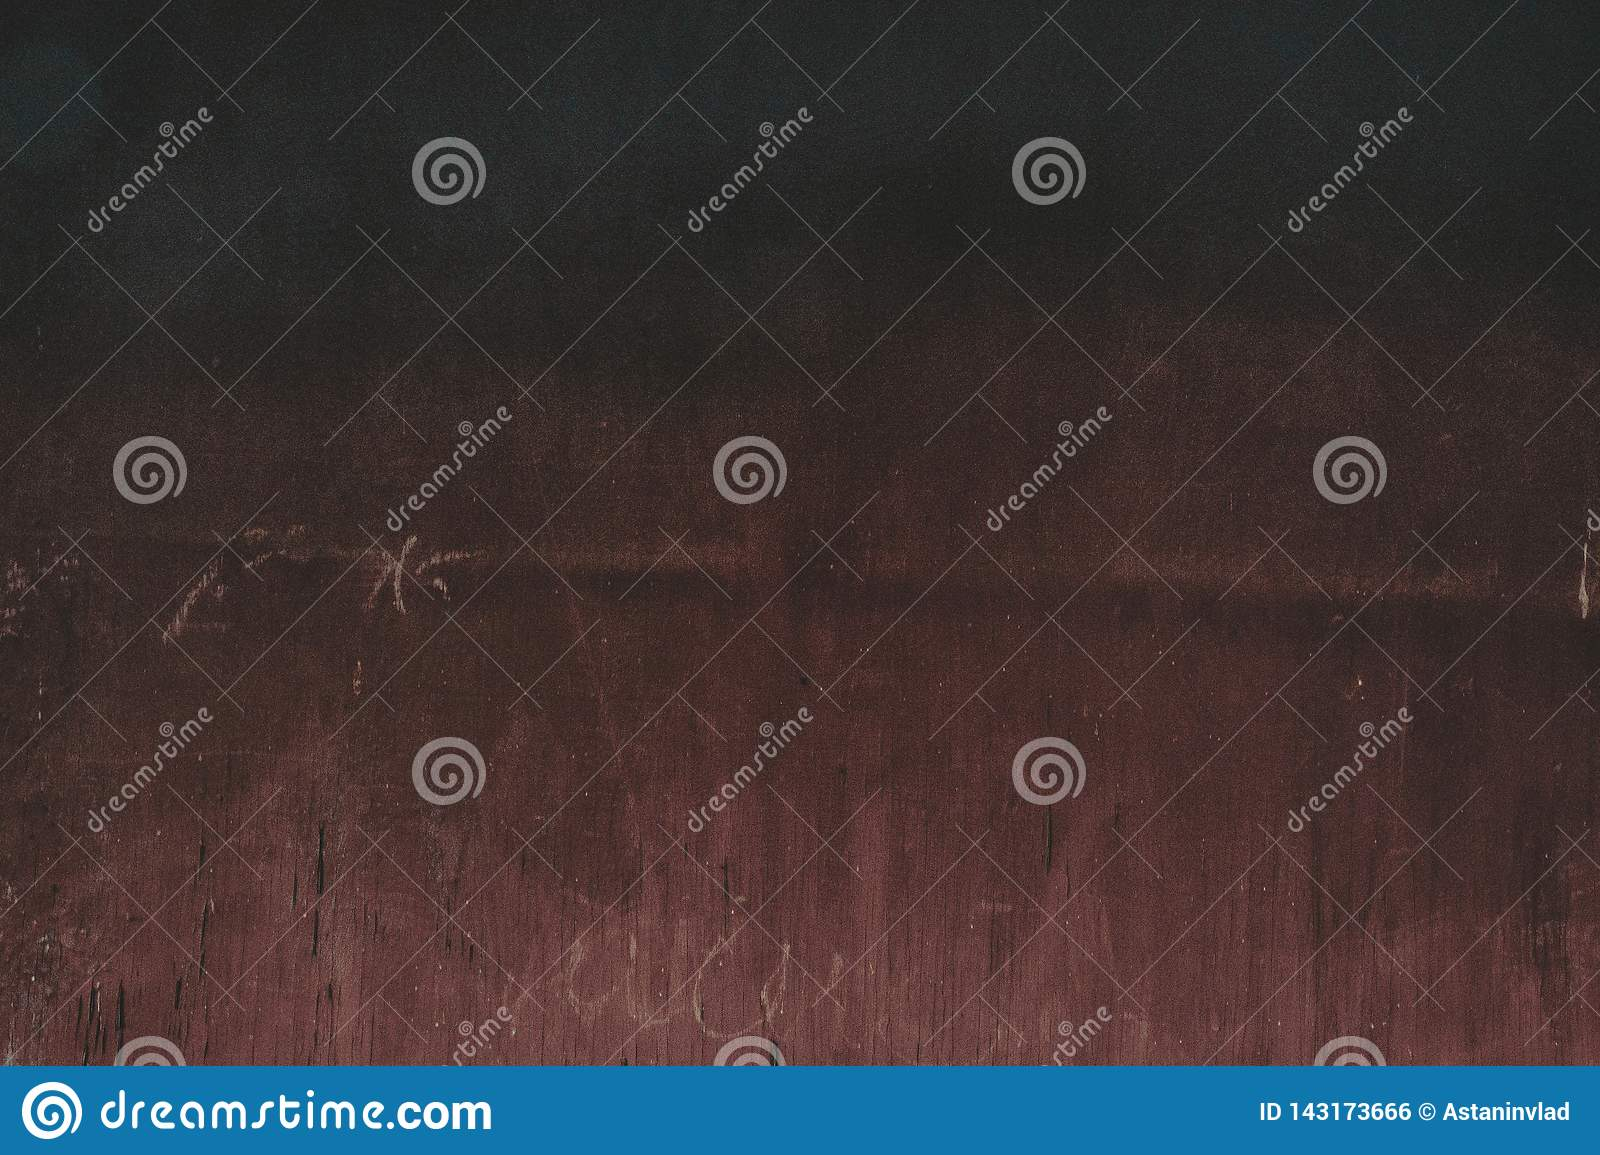 Grunge rusted metal texture, rust and oxidized metal background. Old metal iron panel